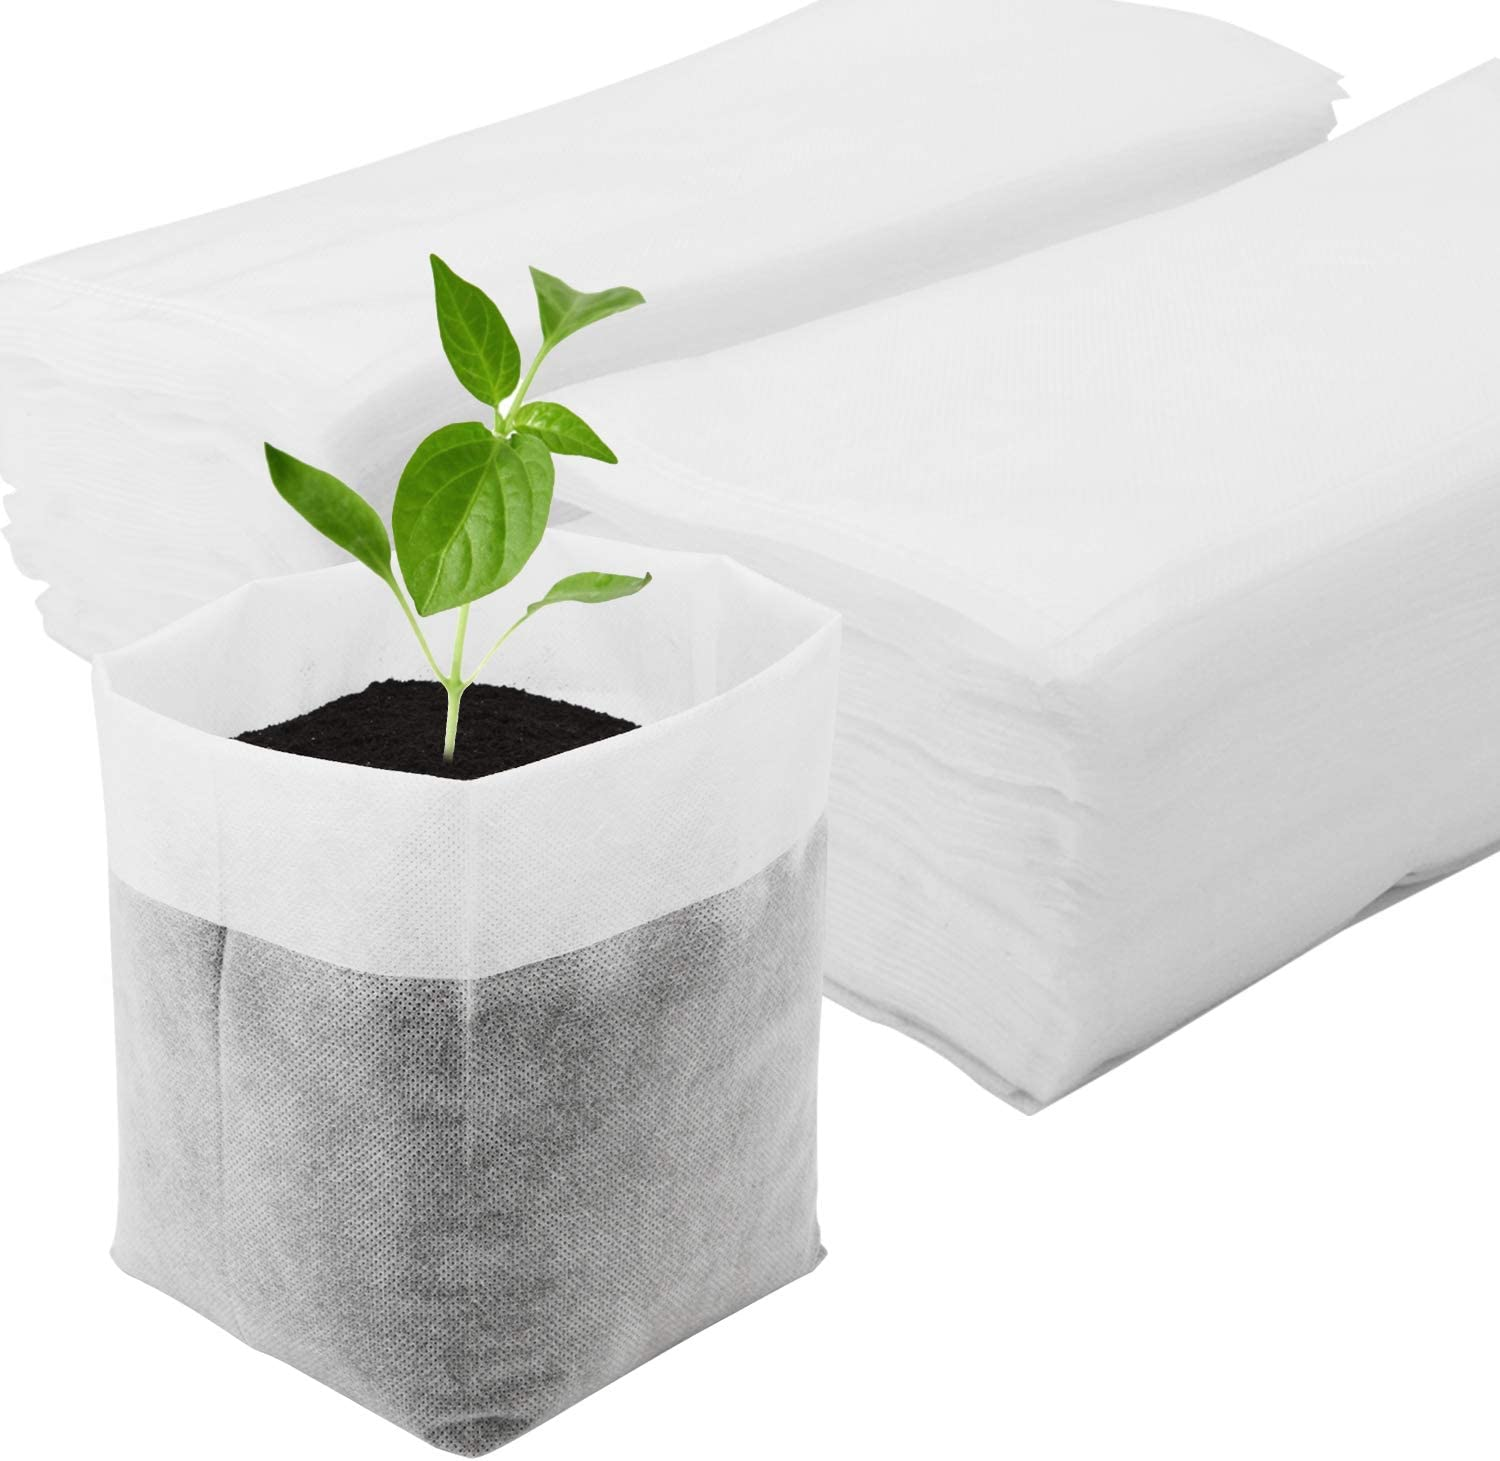 Nursing Growing Pouch, Enpoint 100pcs 11 x 11.8 in Plant Non-Woven Nursery Bags Plant Grow Bags Fabric Seedling Pots Home Garden Supply for High Seedling Survival Rate Planting Growing